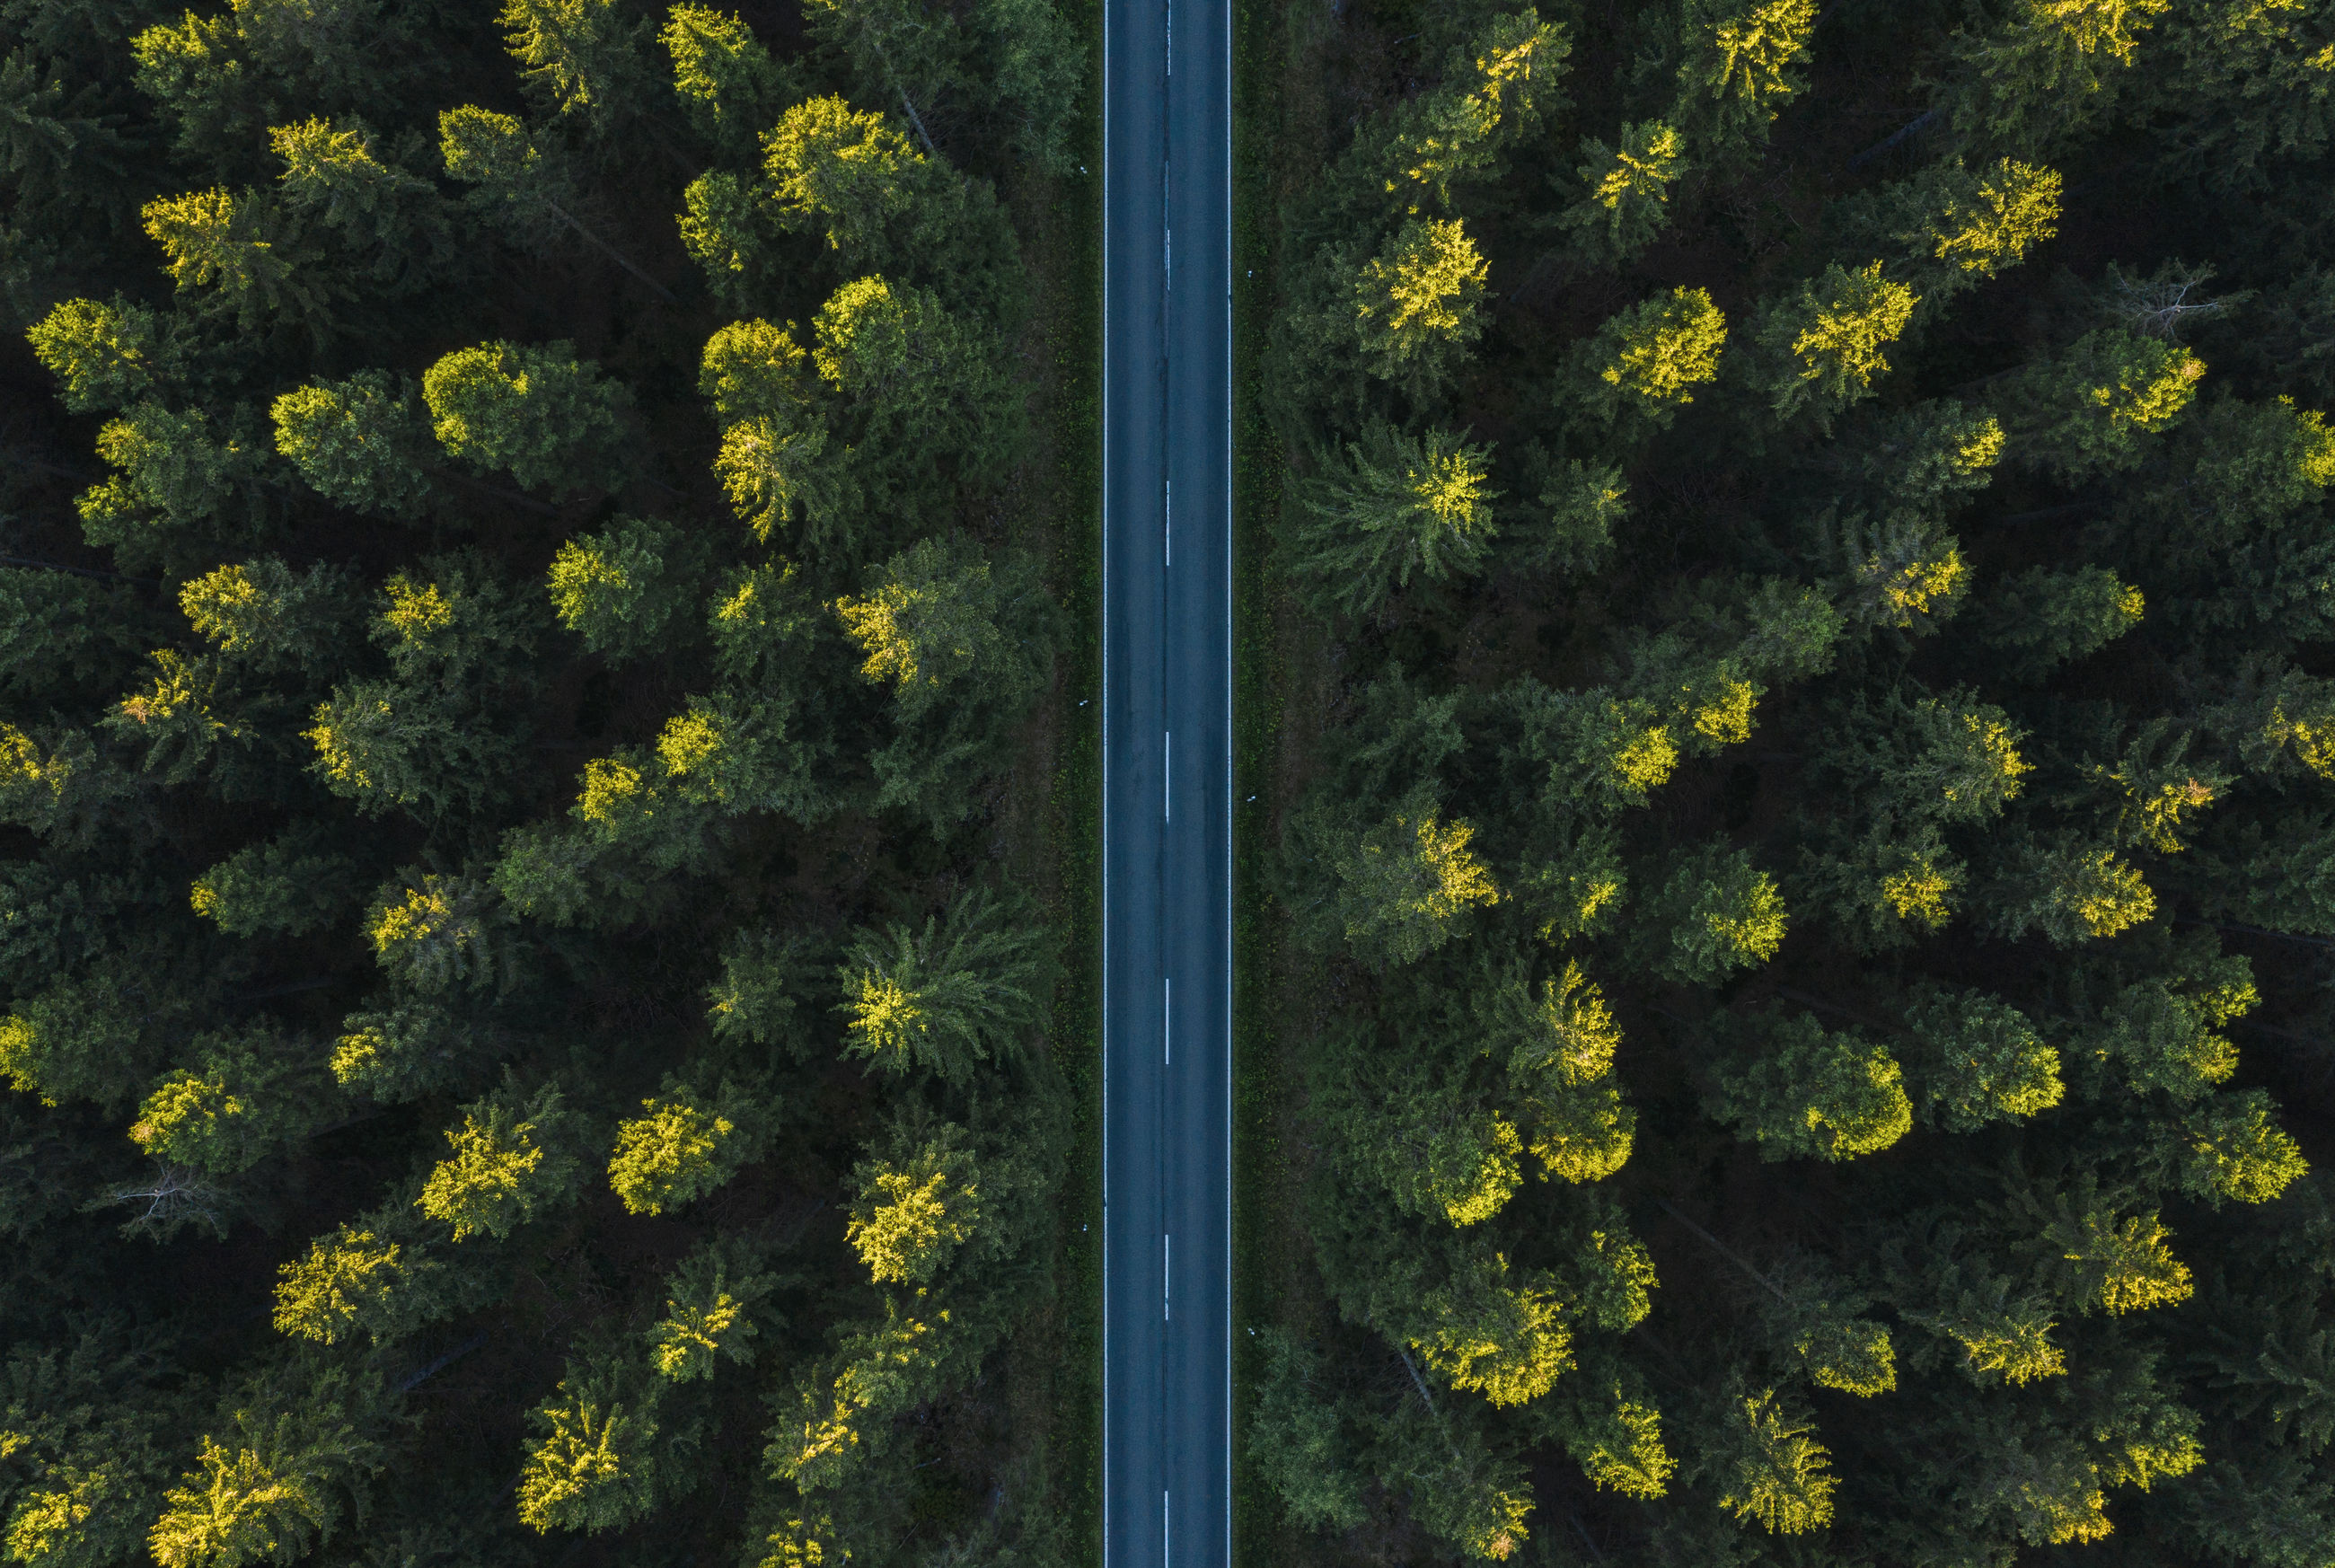 Full frame shot of road amidst trees in forest